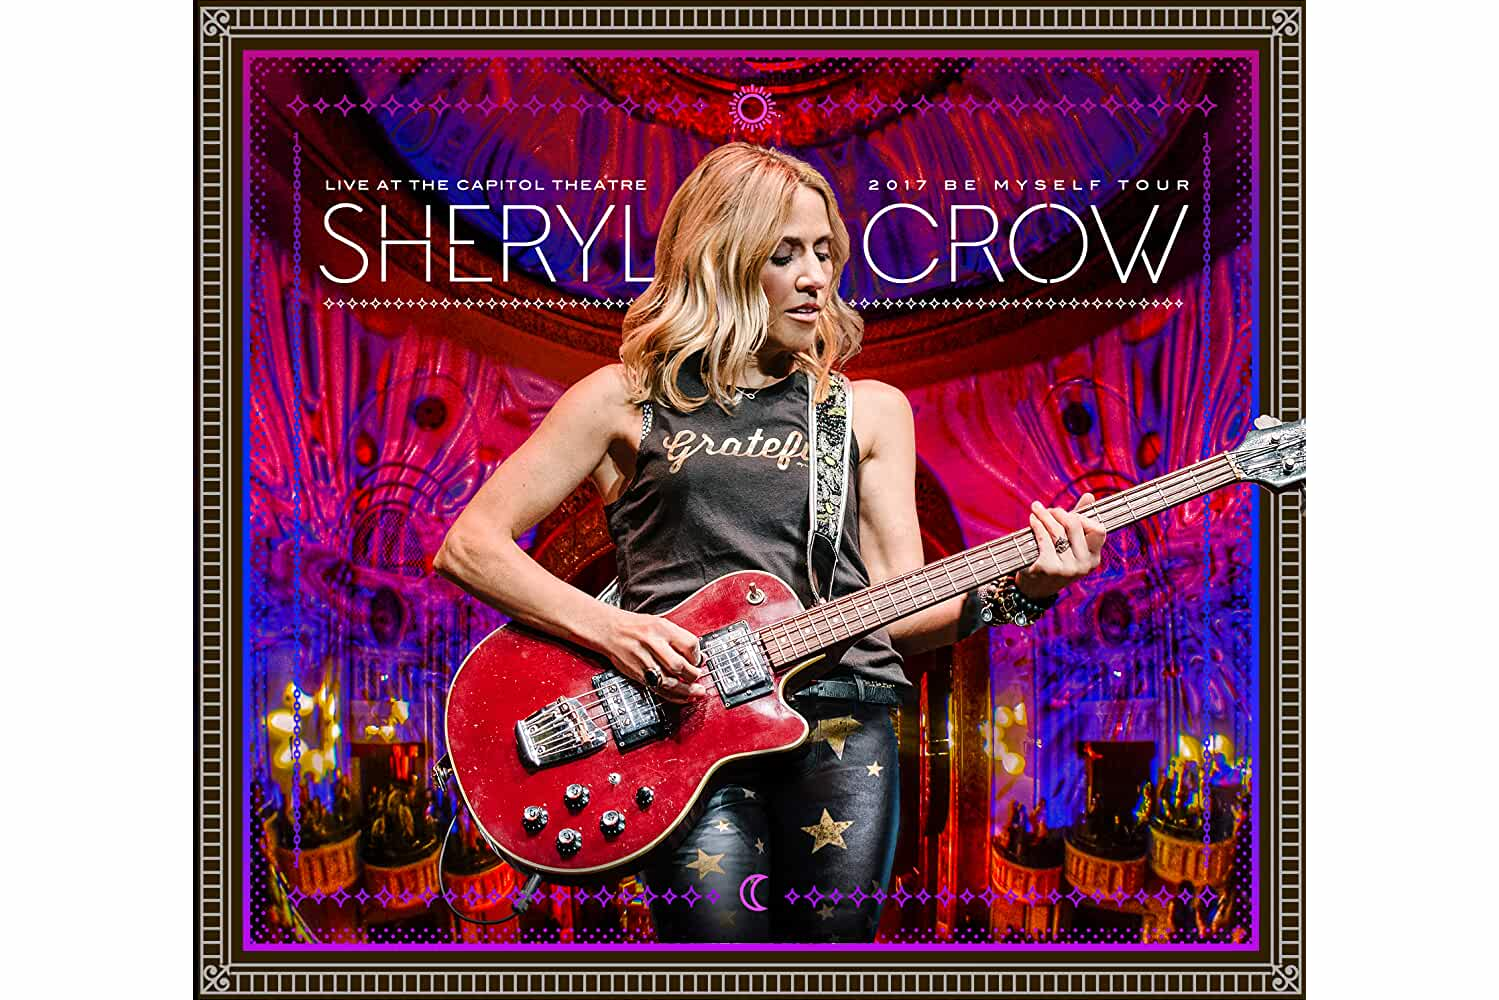 Sheryl Crow Live at the Capitol Theatre (2018)